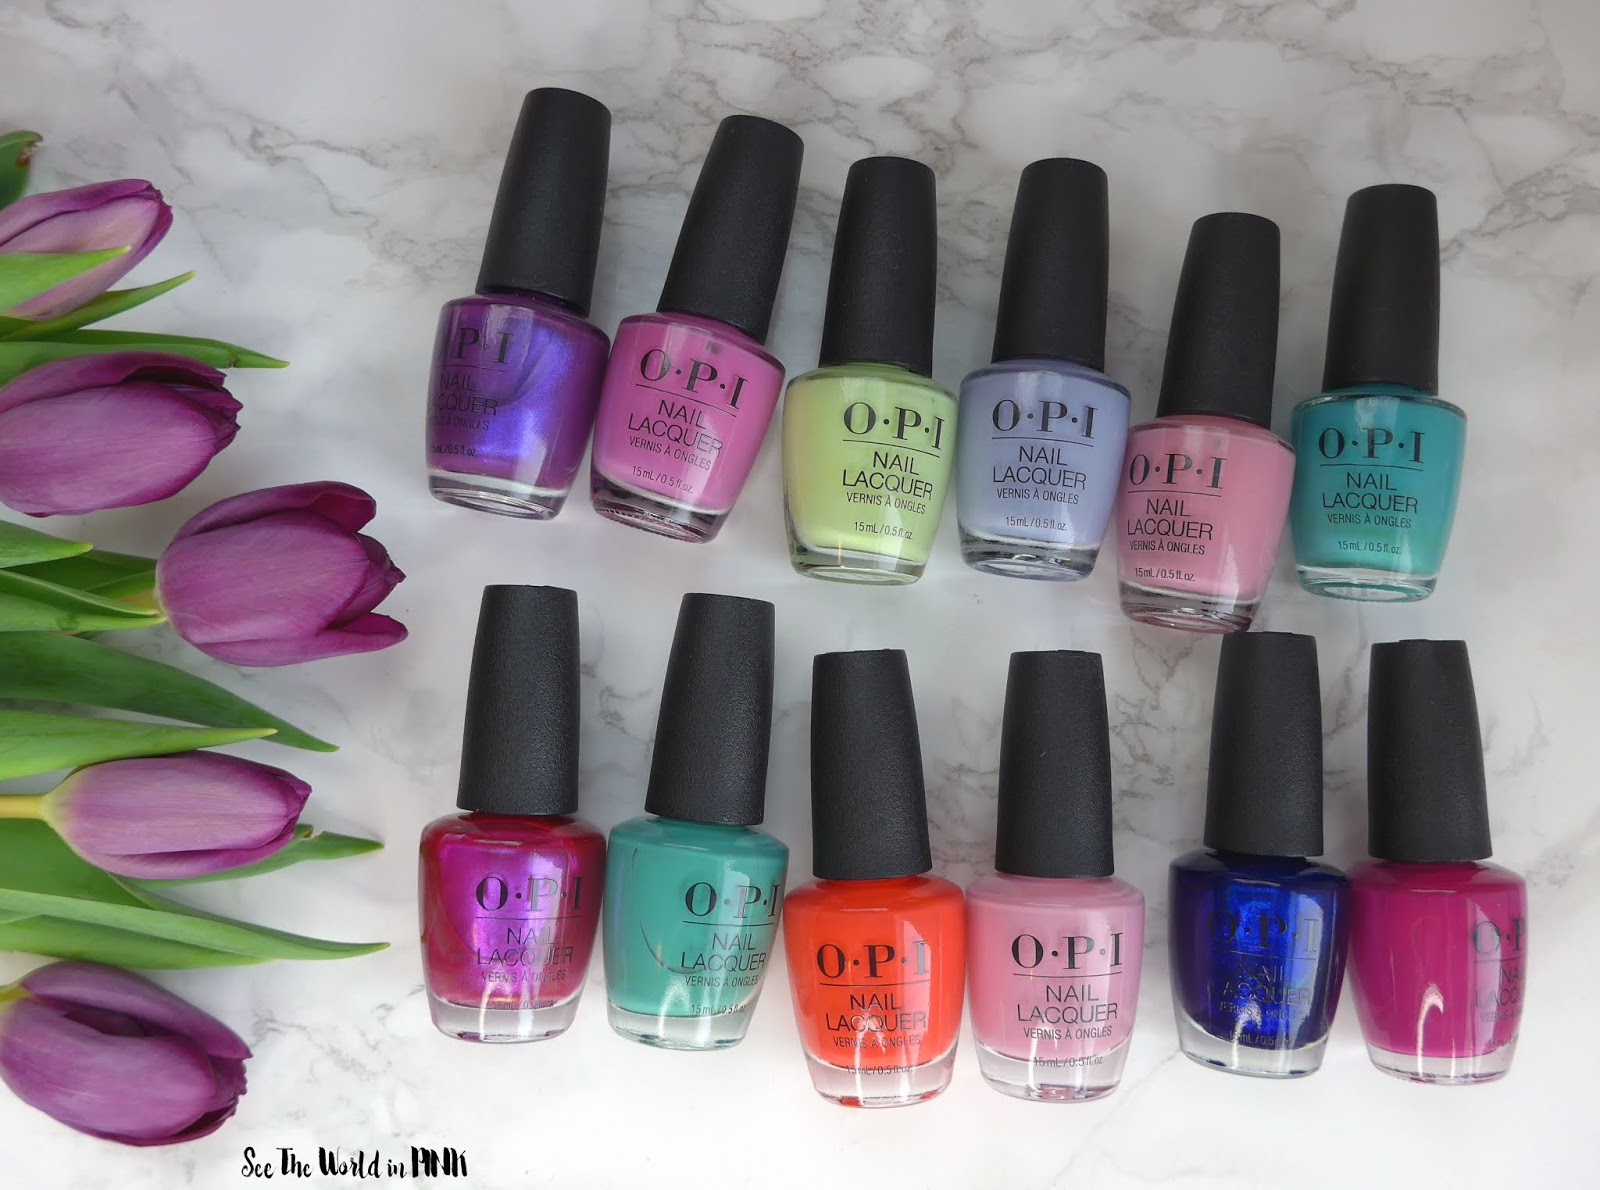 Manicure Monday - OPI Tokyo Collection for Spring and Summer 2019